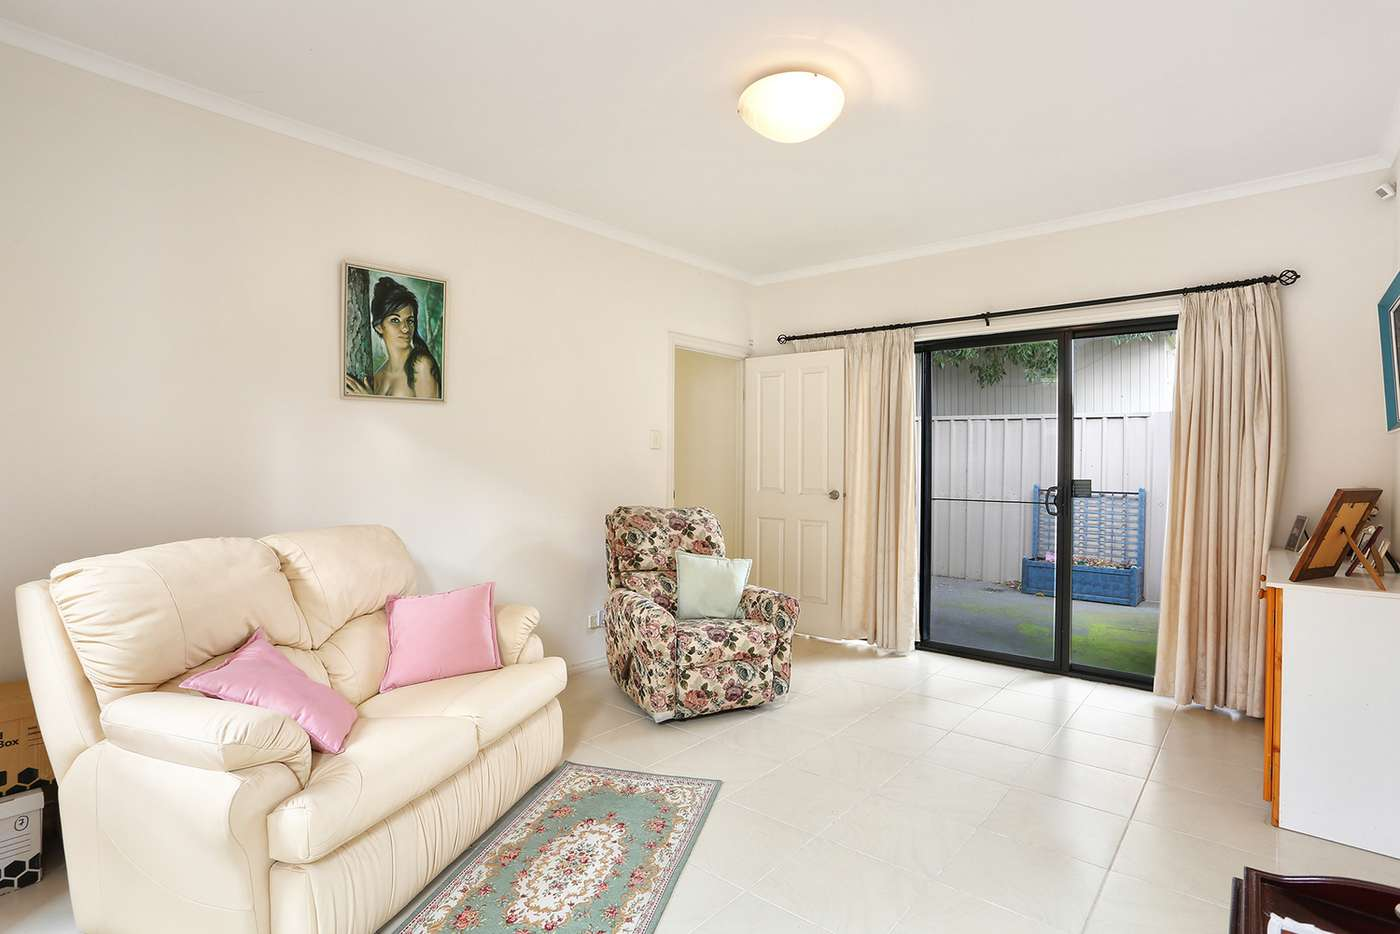 Fifth view of Homely house listing, 37 Dumfries Avenue, Northfield SA 5085